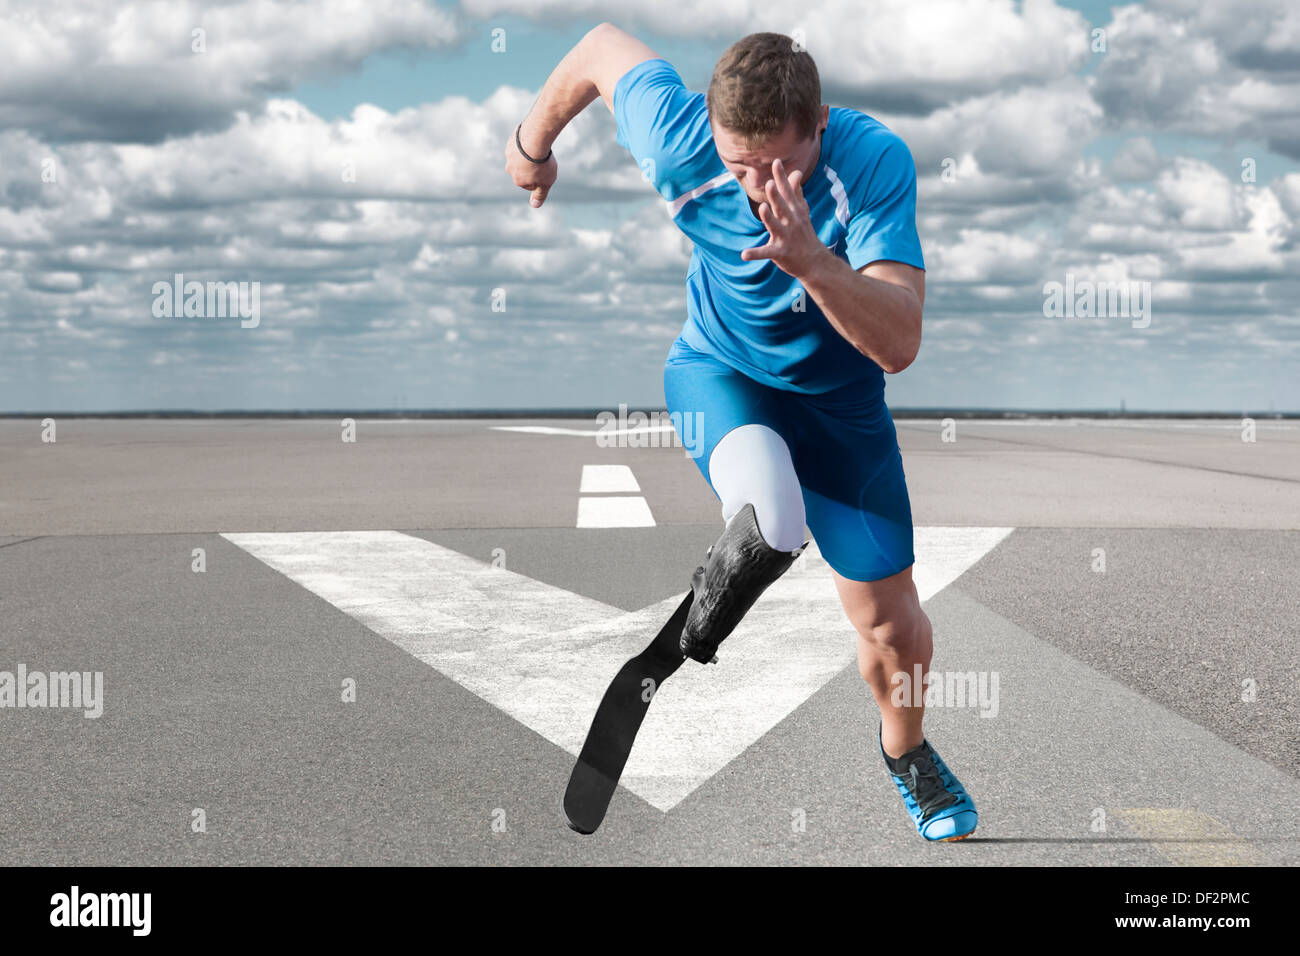 Disabled athlete with explosive start on the runway - Stock Image